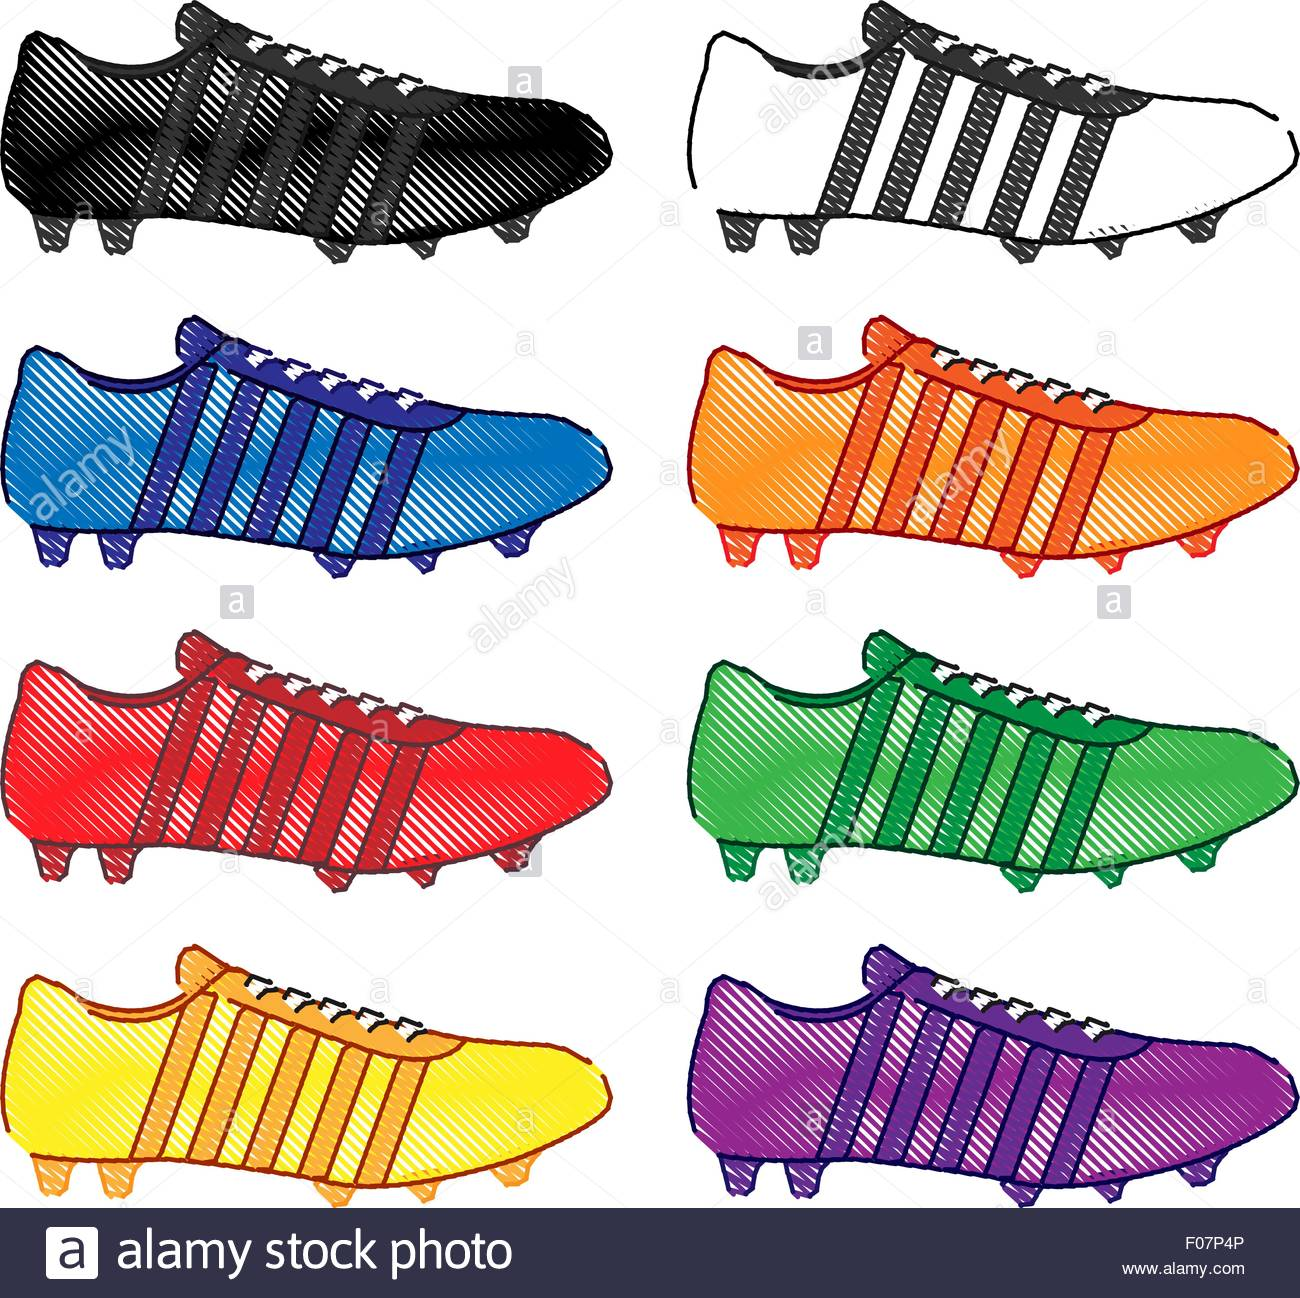 Football Cleats with Stripes in Different Colours Black White Blue.